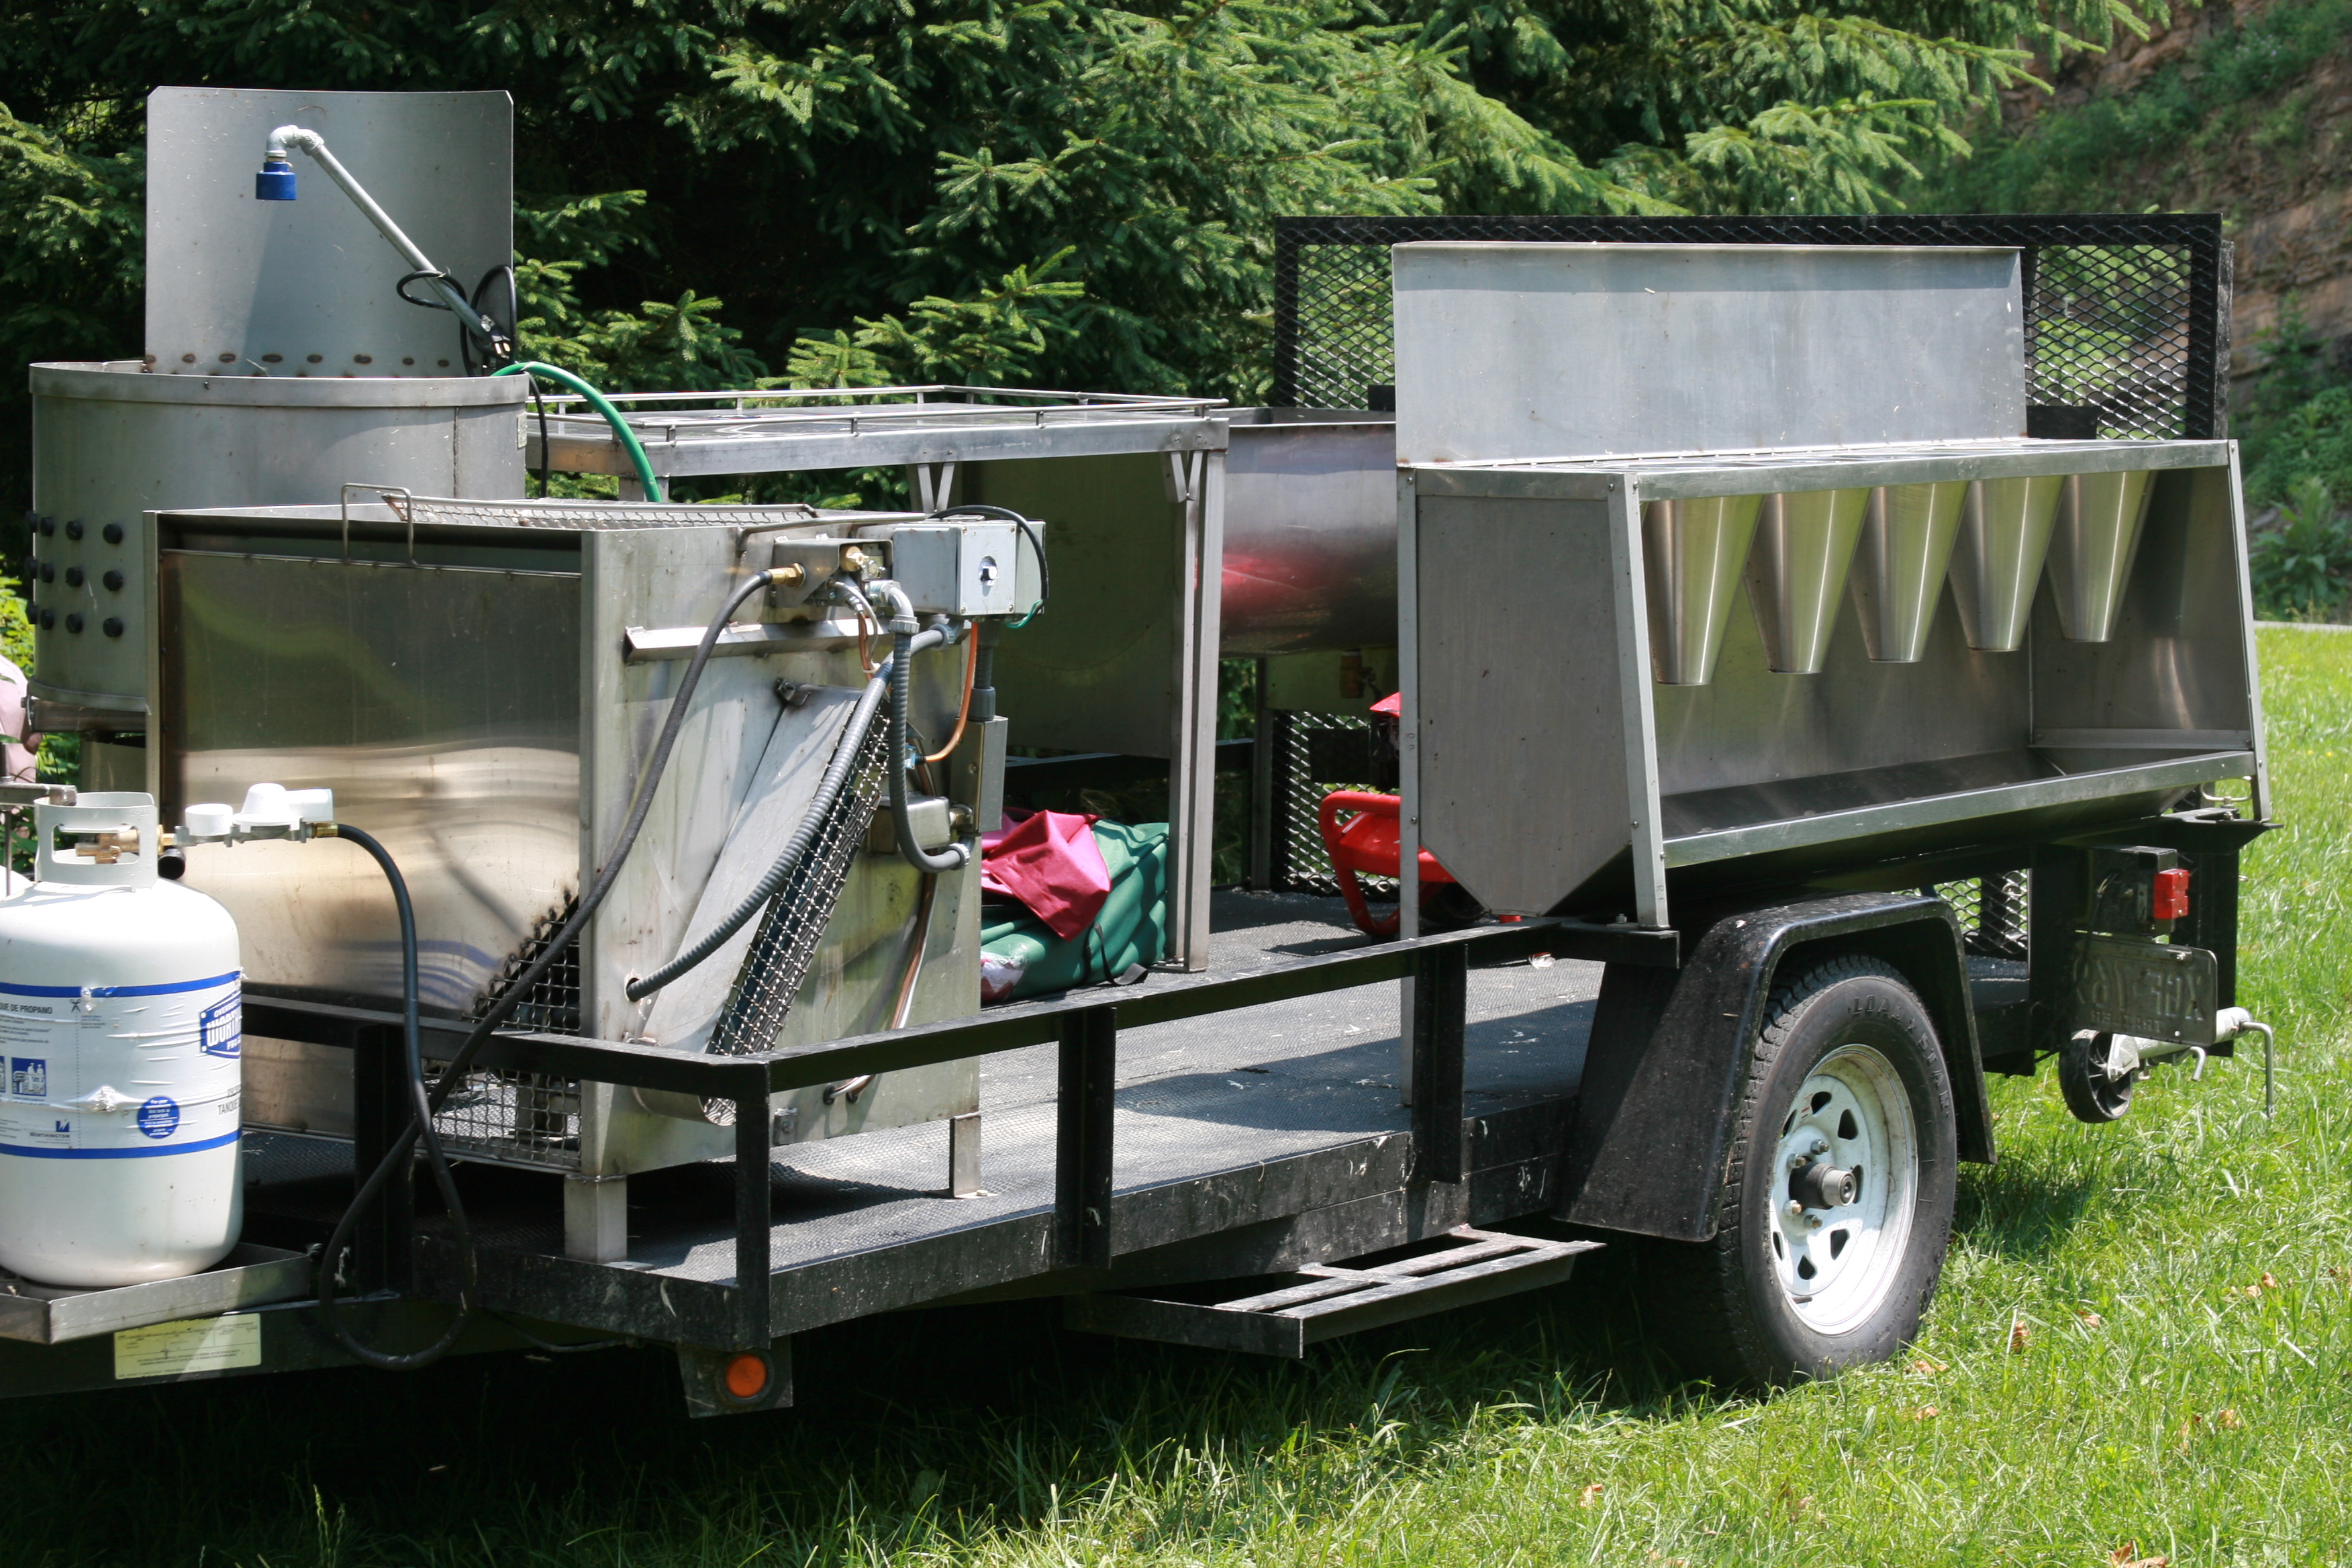 Mobile poultry slaughter trailer